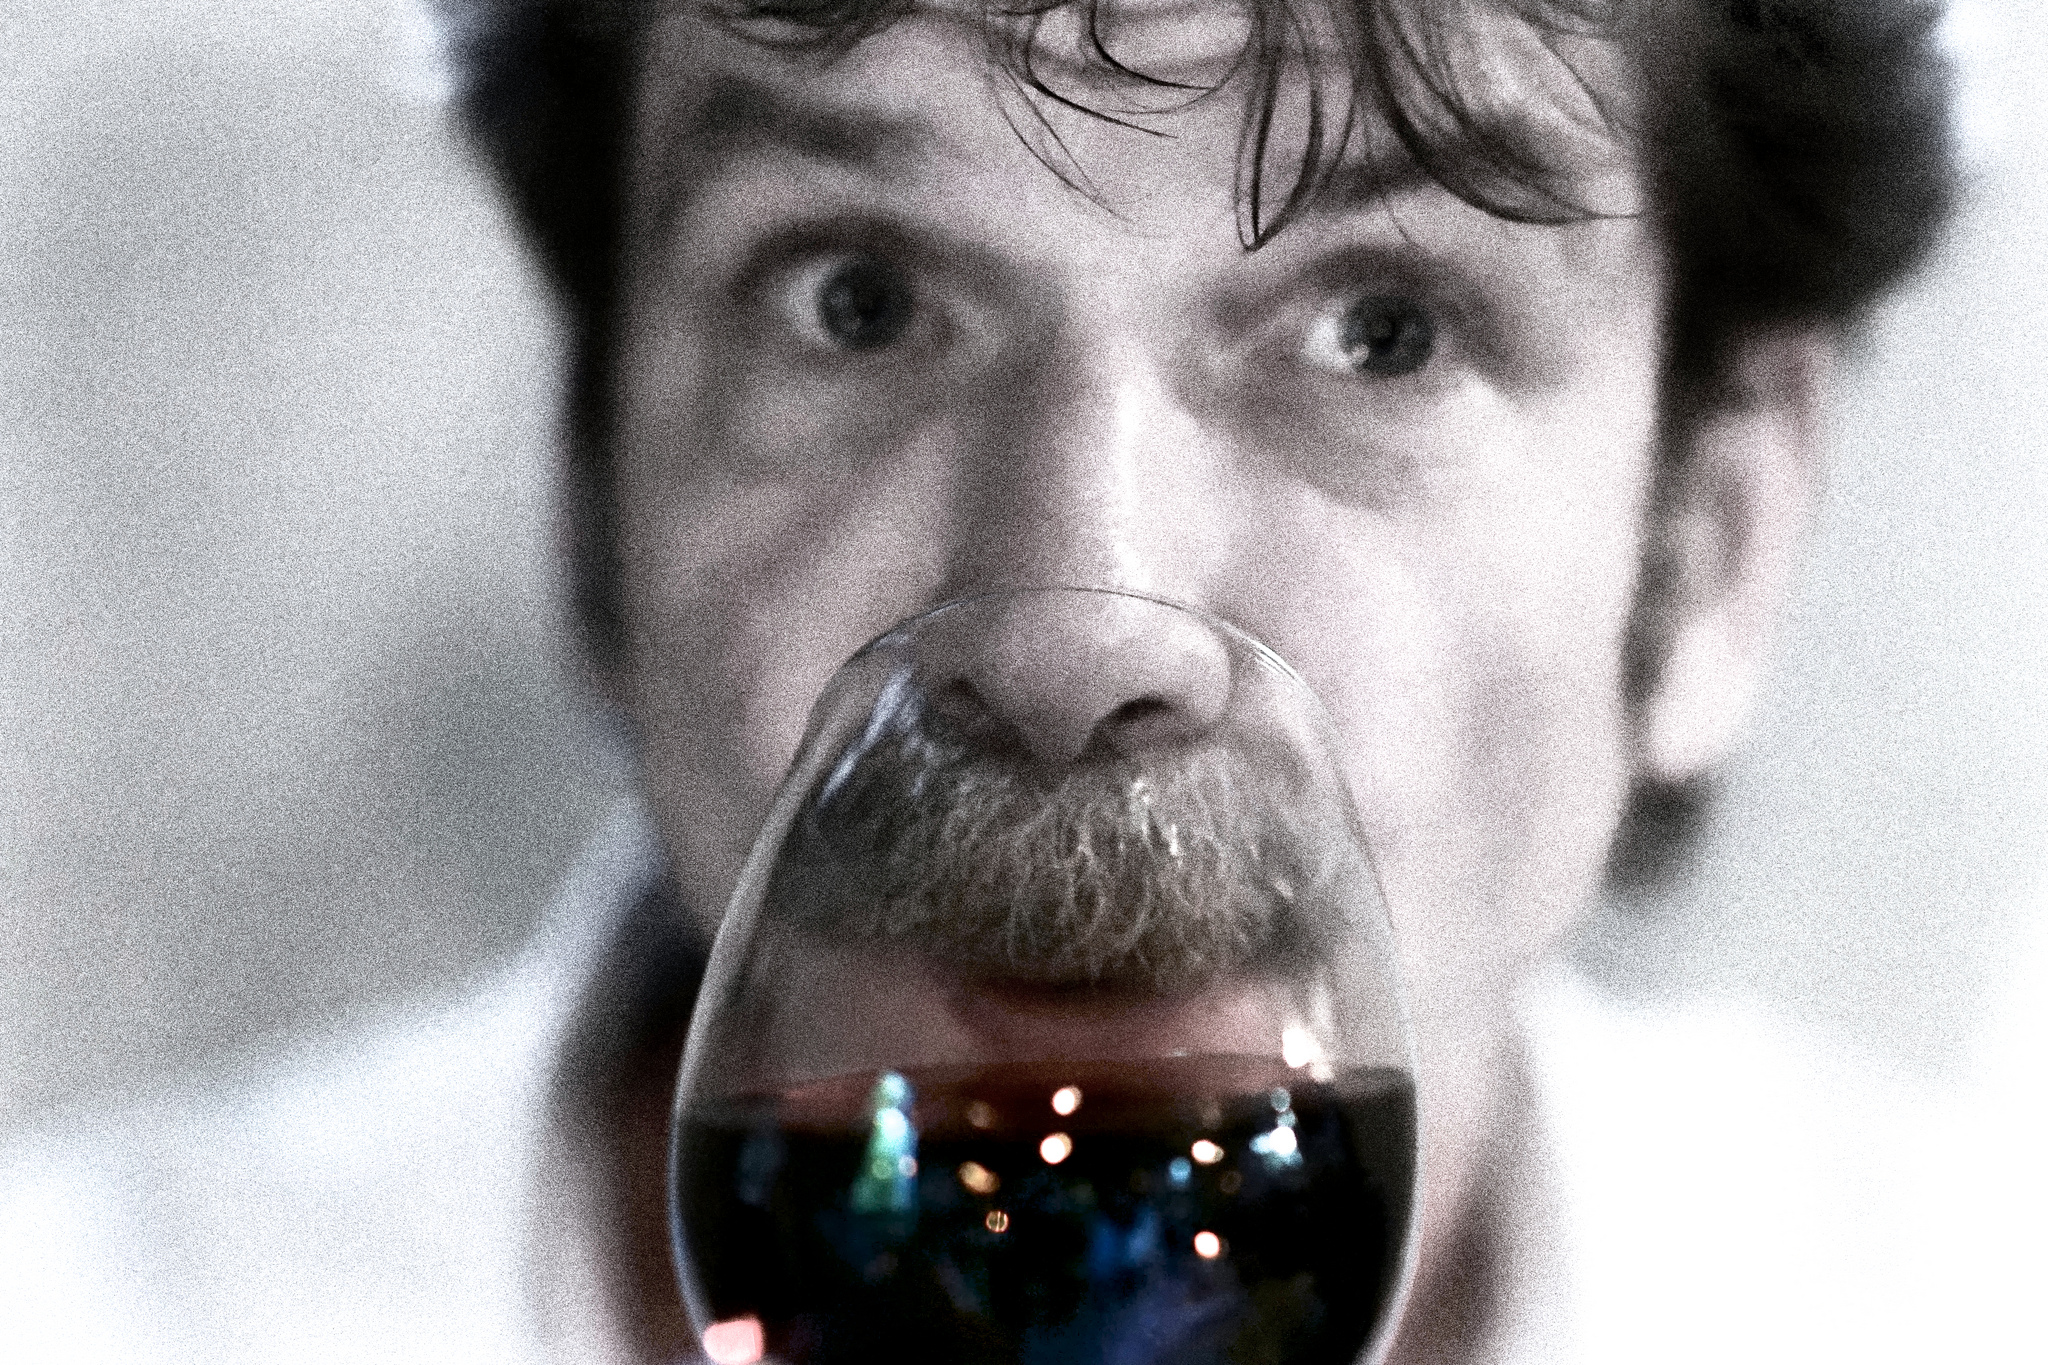 Lie about it: 6 ways to tell a winemaker his wine really sucks